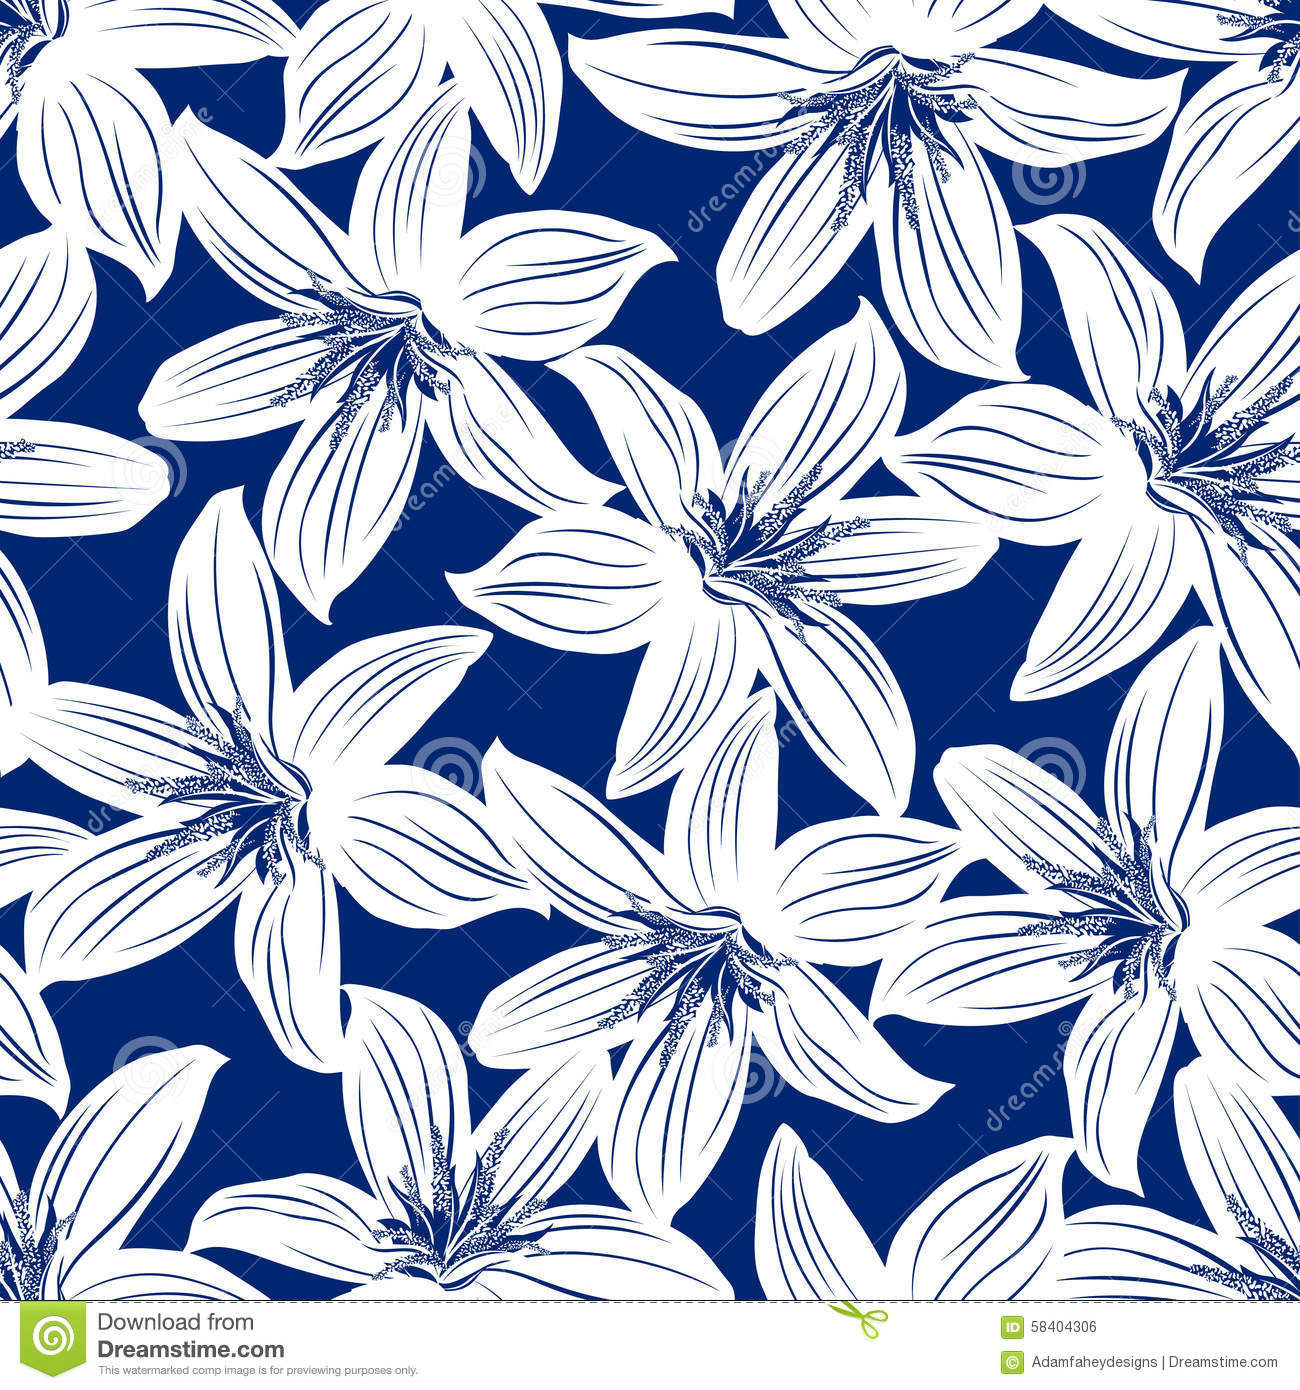 Navy And White Tropical Hibiscus Floral Seamless Pattern Stock